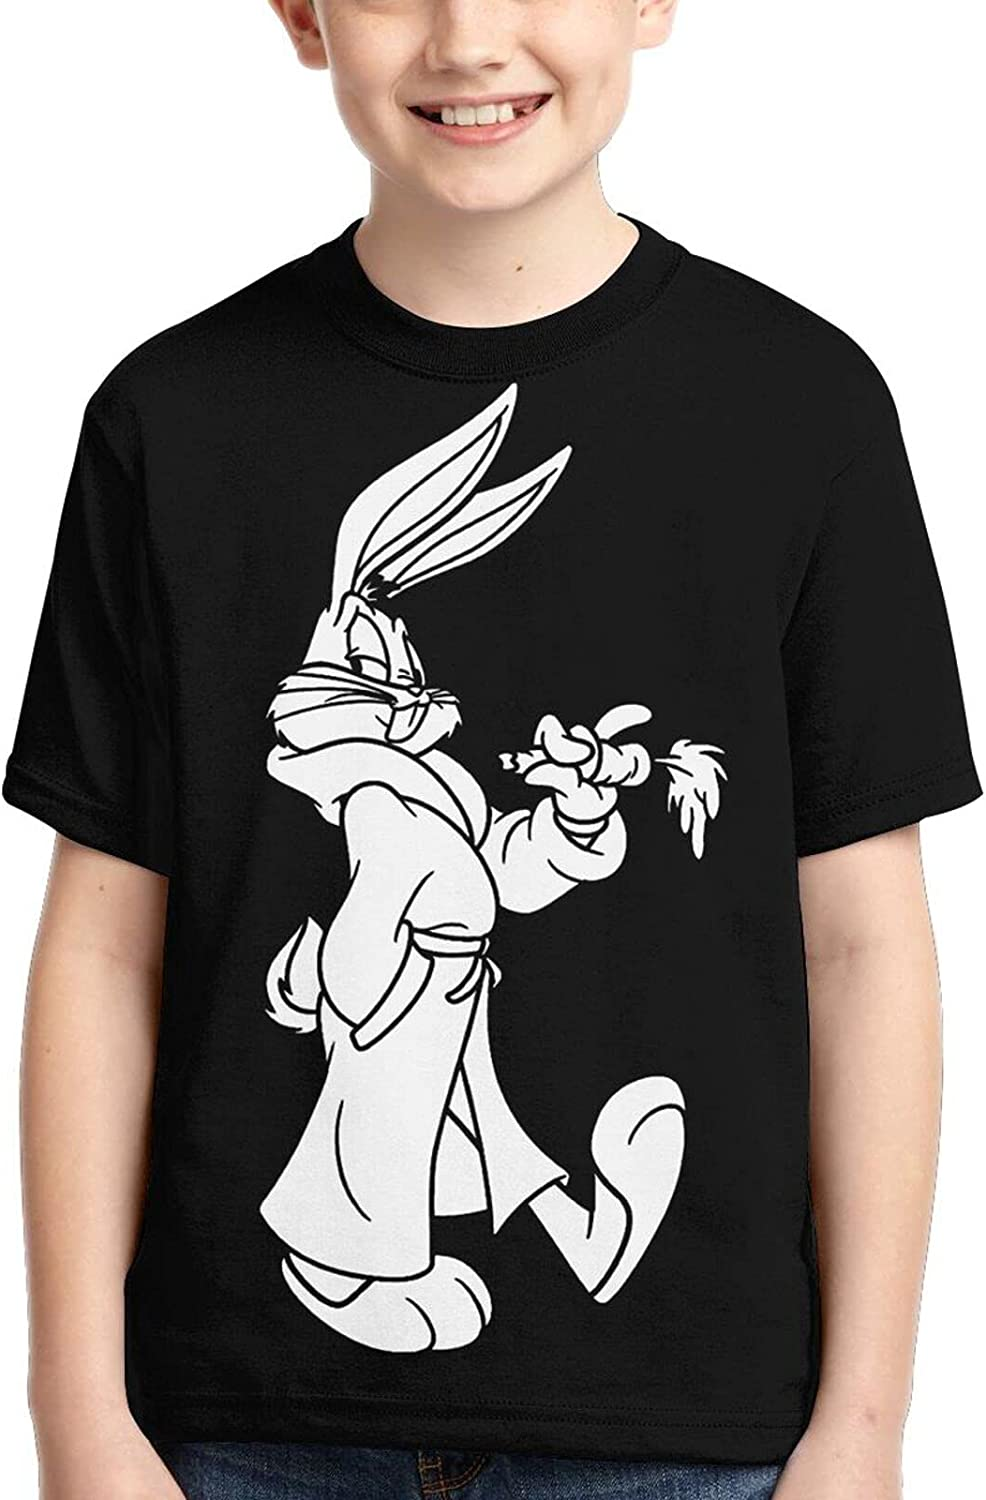 FANPANHE Bugs Bunny Fashion Trend Boys Round Lowest price challenge Now free shipping Print Sl Short Neck